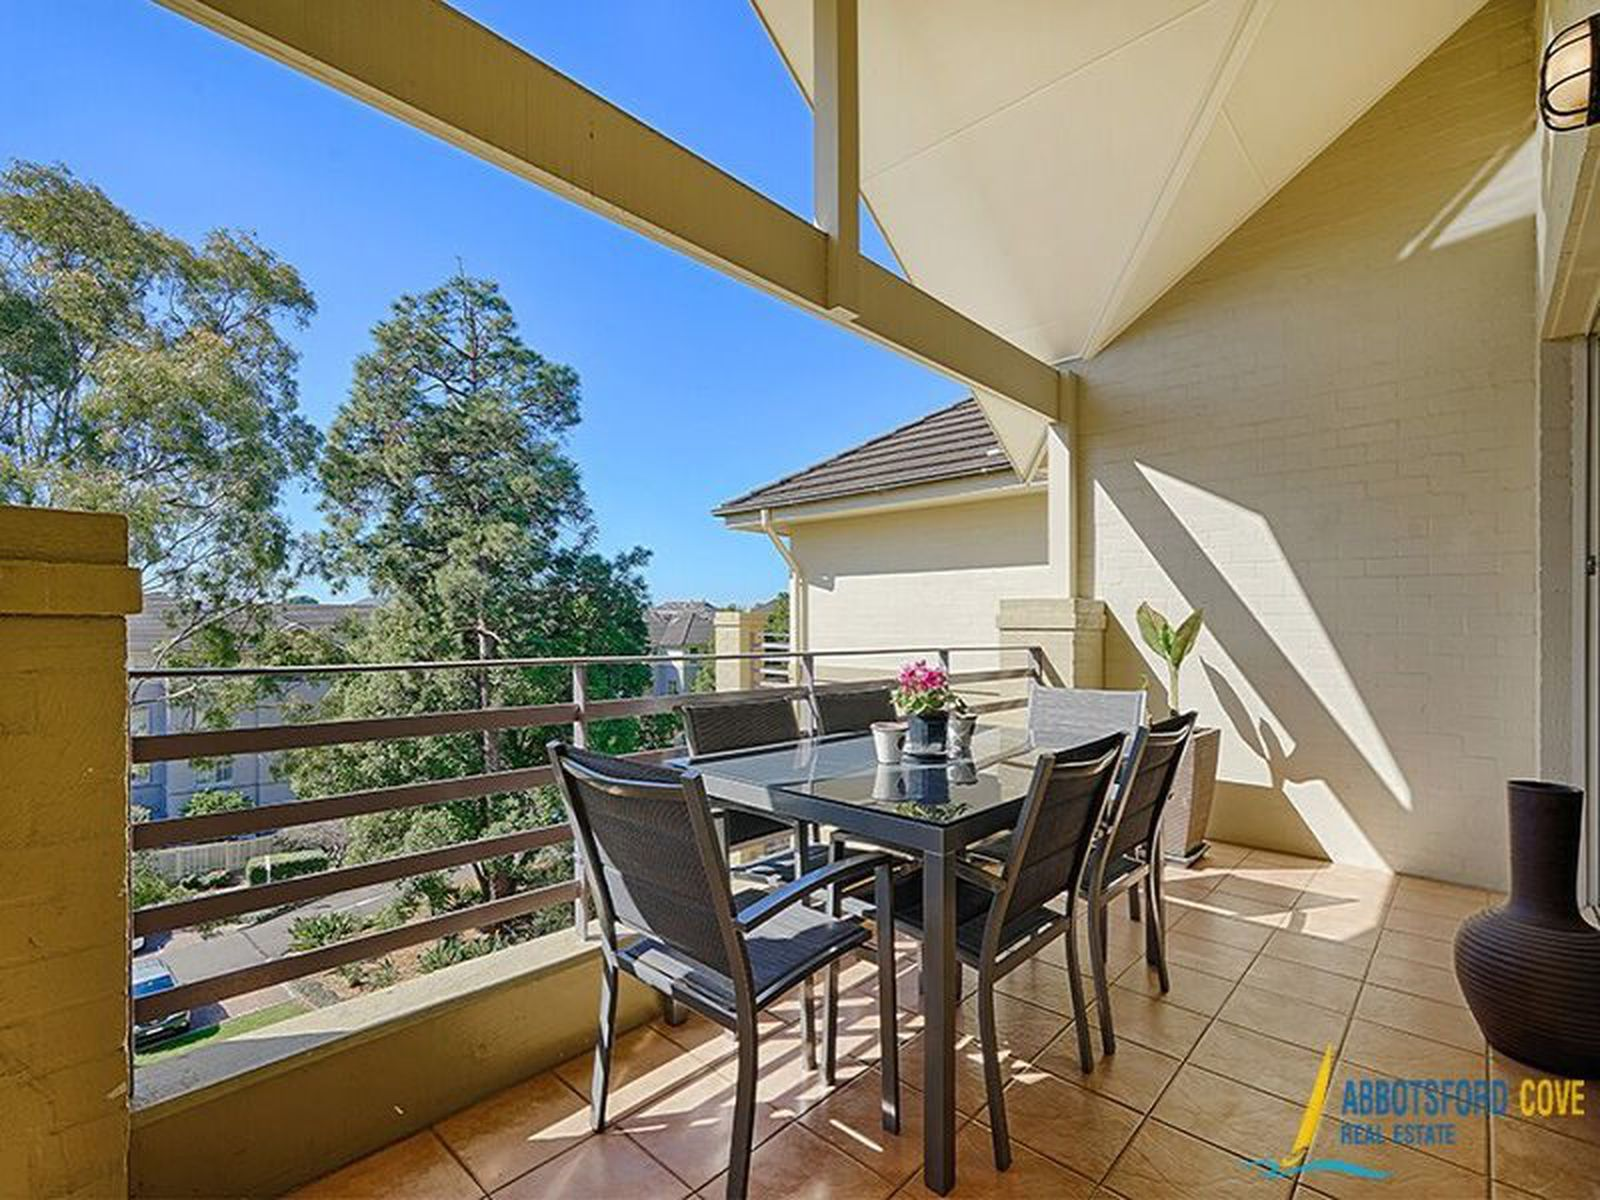 29 / 1 Figtree Avenue, Abbotsford